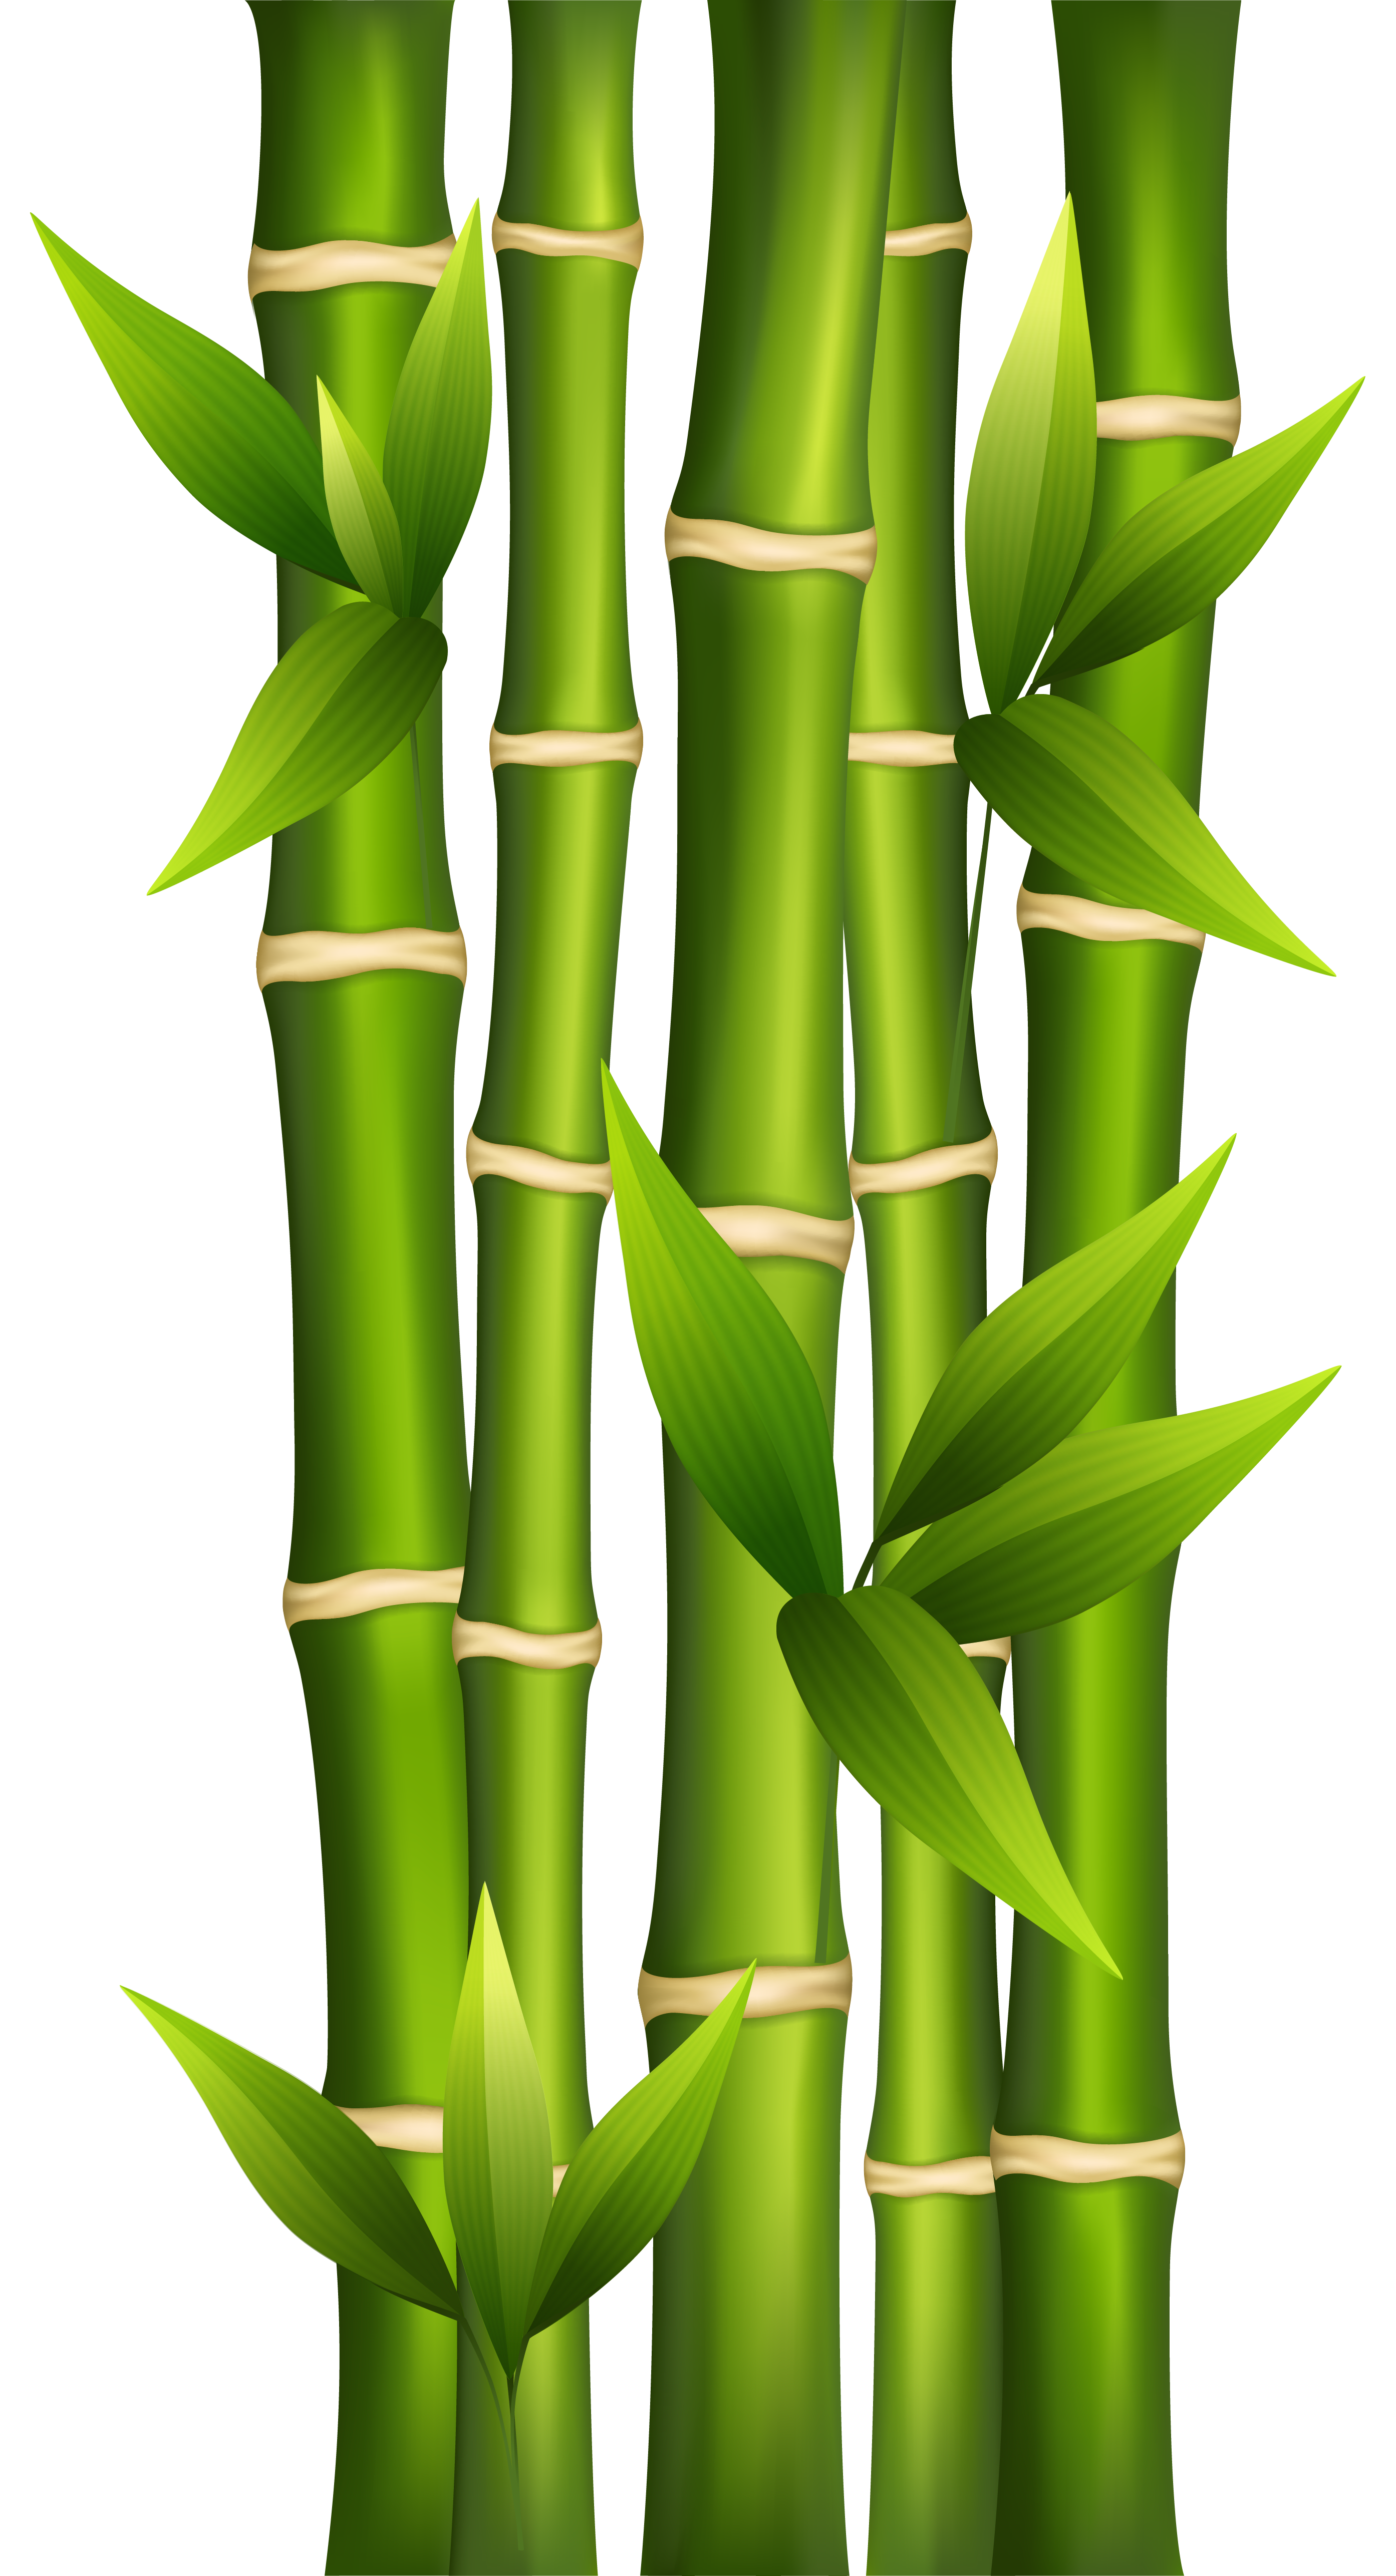 Bamboo house forest clipart picture library library 28+ Collection of Bamboo Clipart | High quality, free cliparts ... picture library library